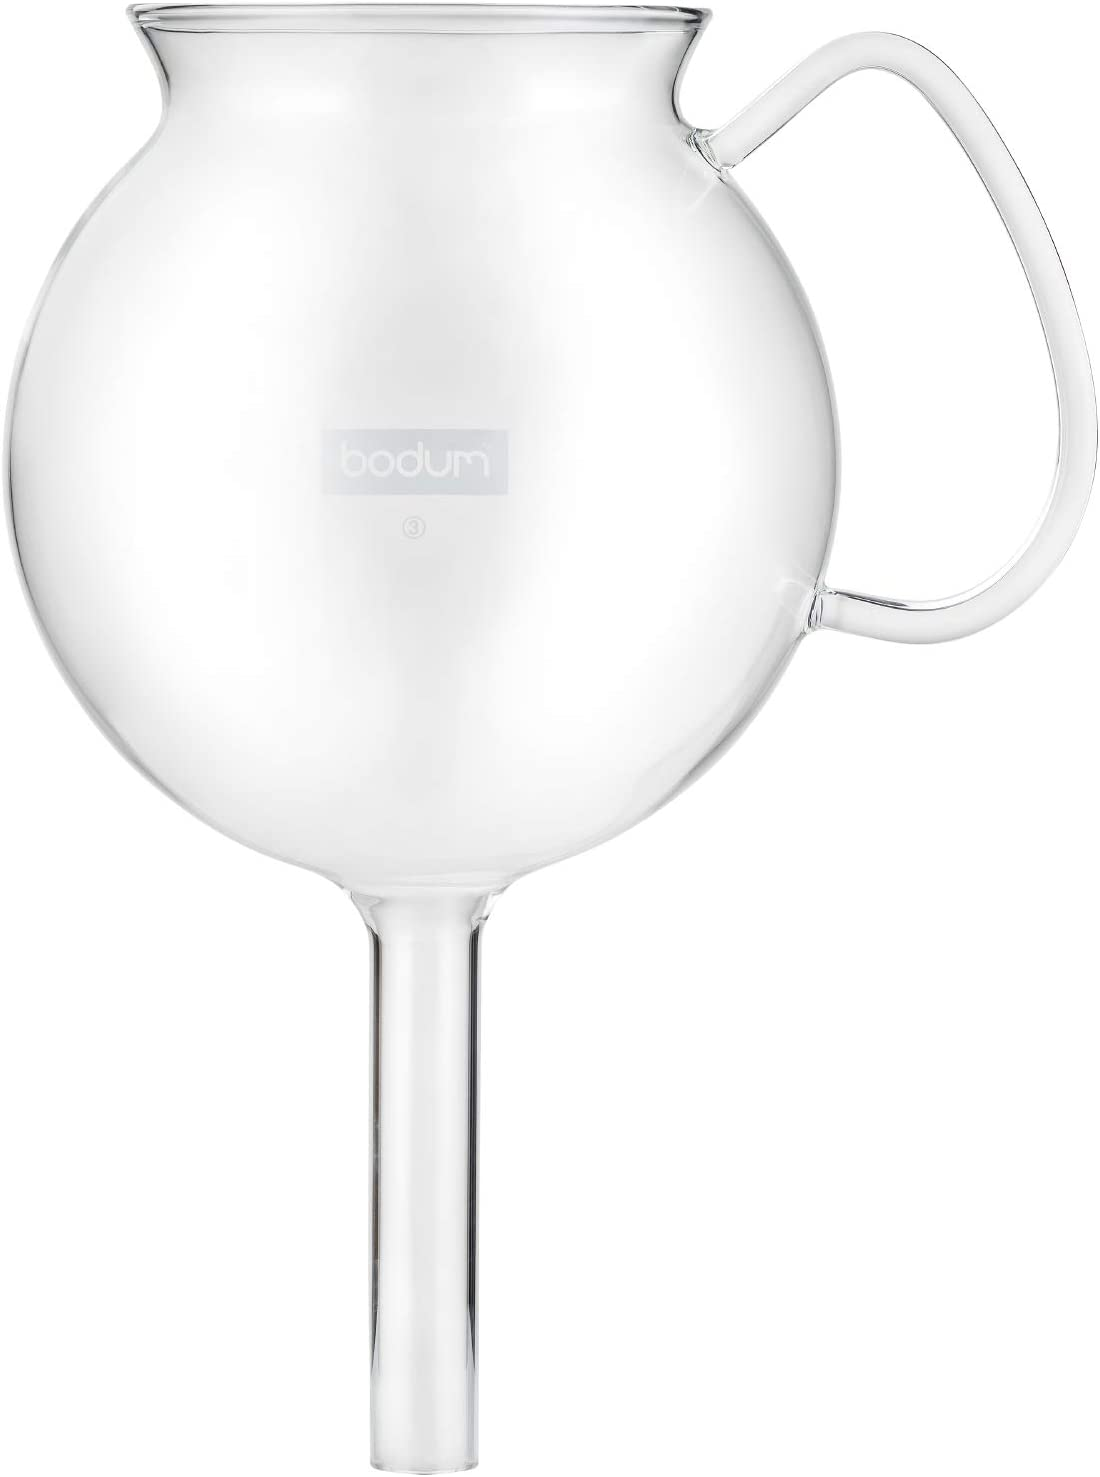 Bodum 01-11744-10-20 Spare Upper Carafe for ePebo, 34 Oz, Clear